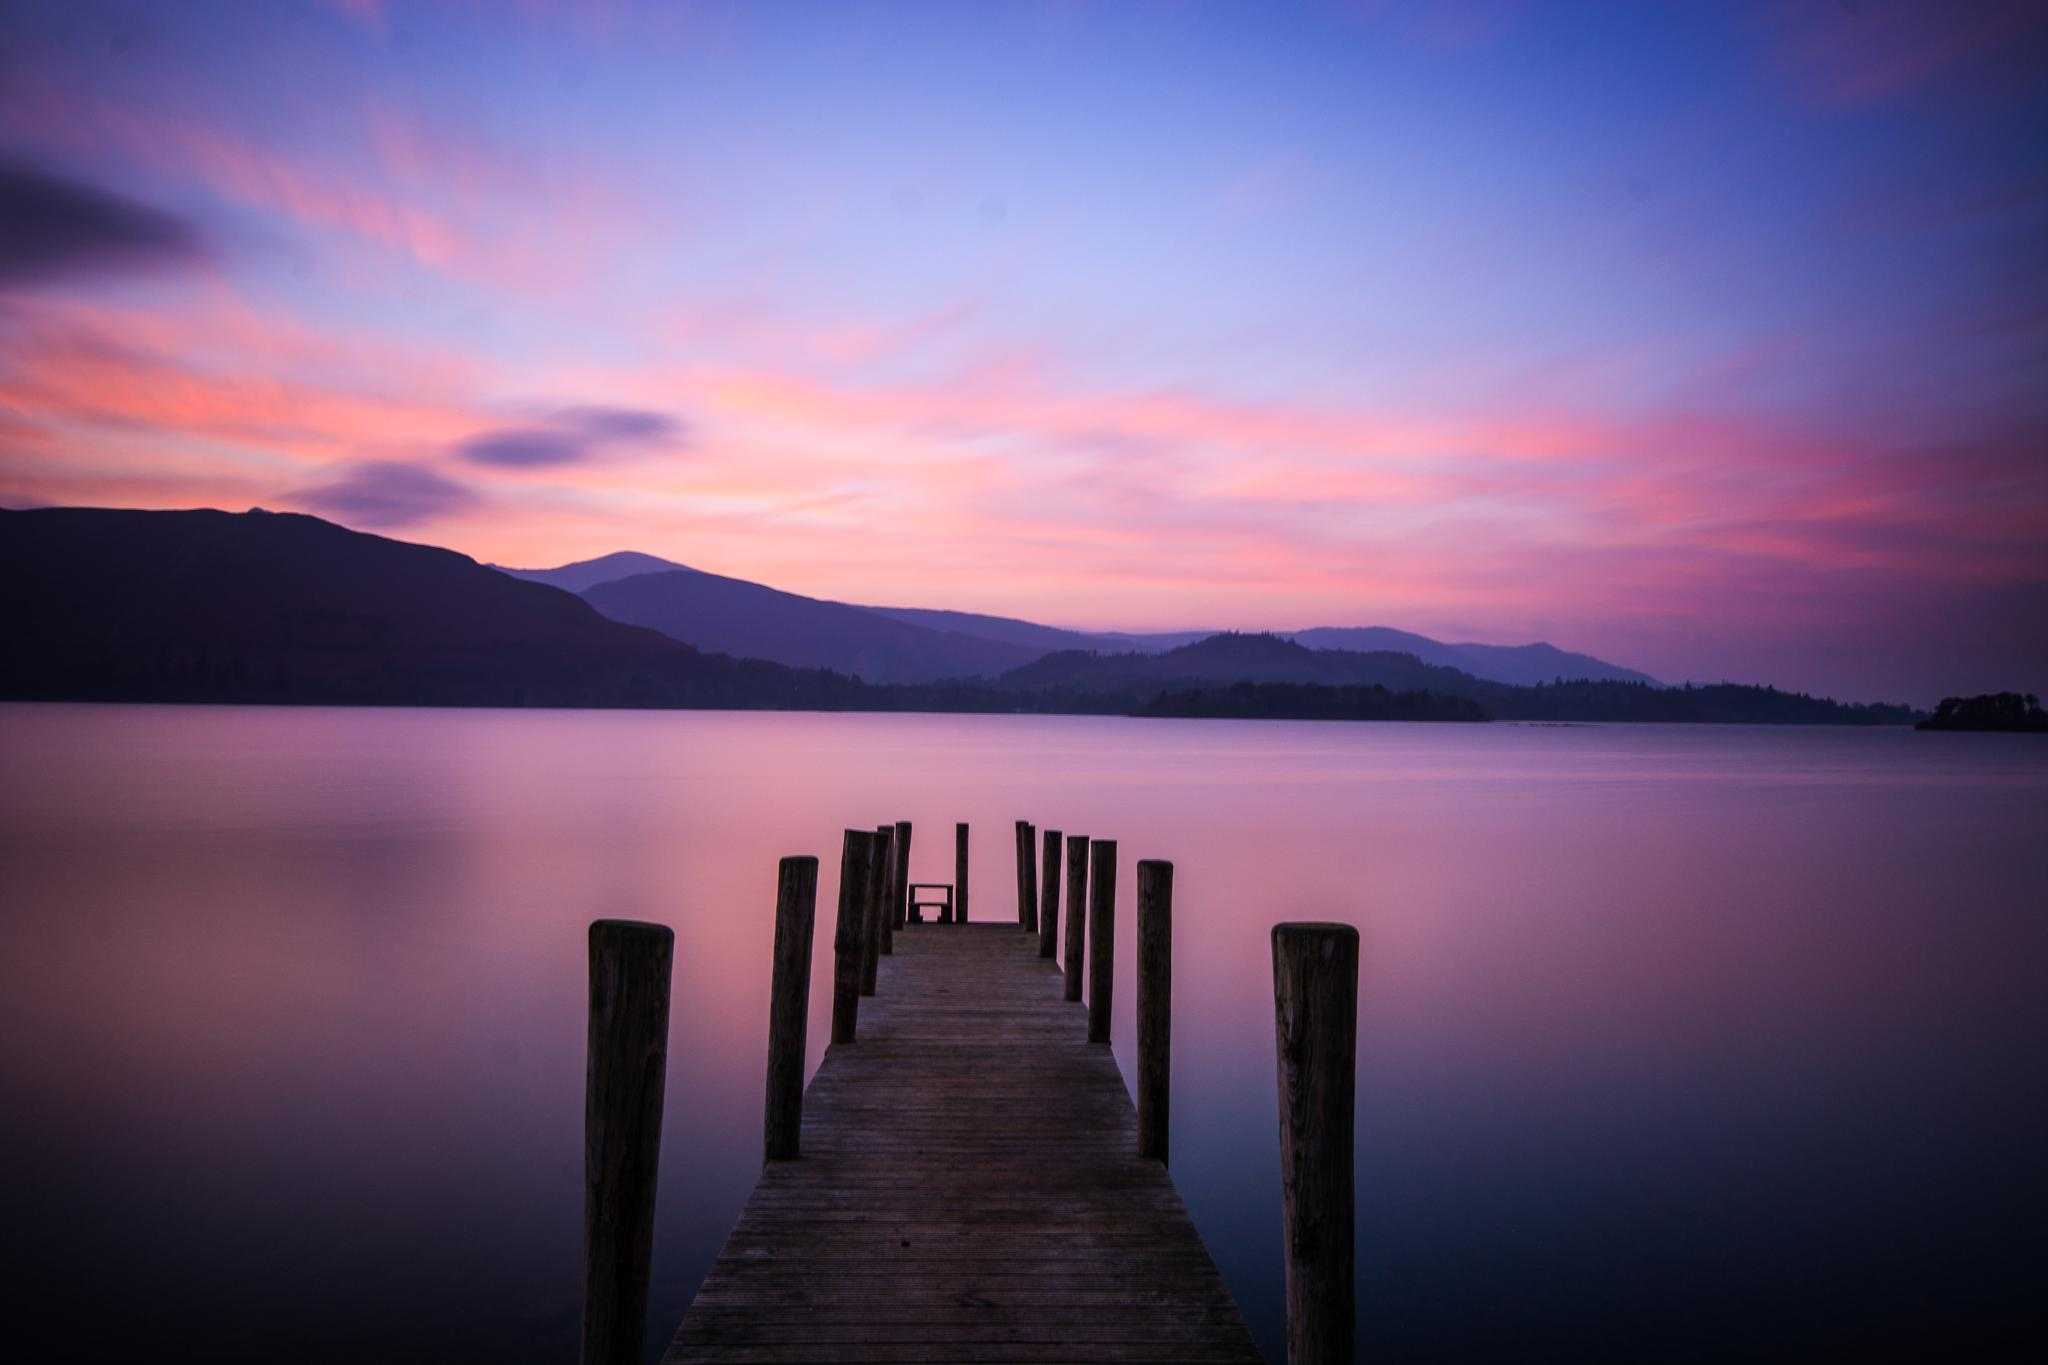 Jetty by Mark Helm